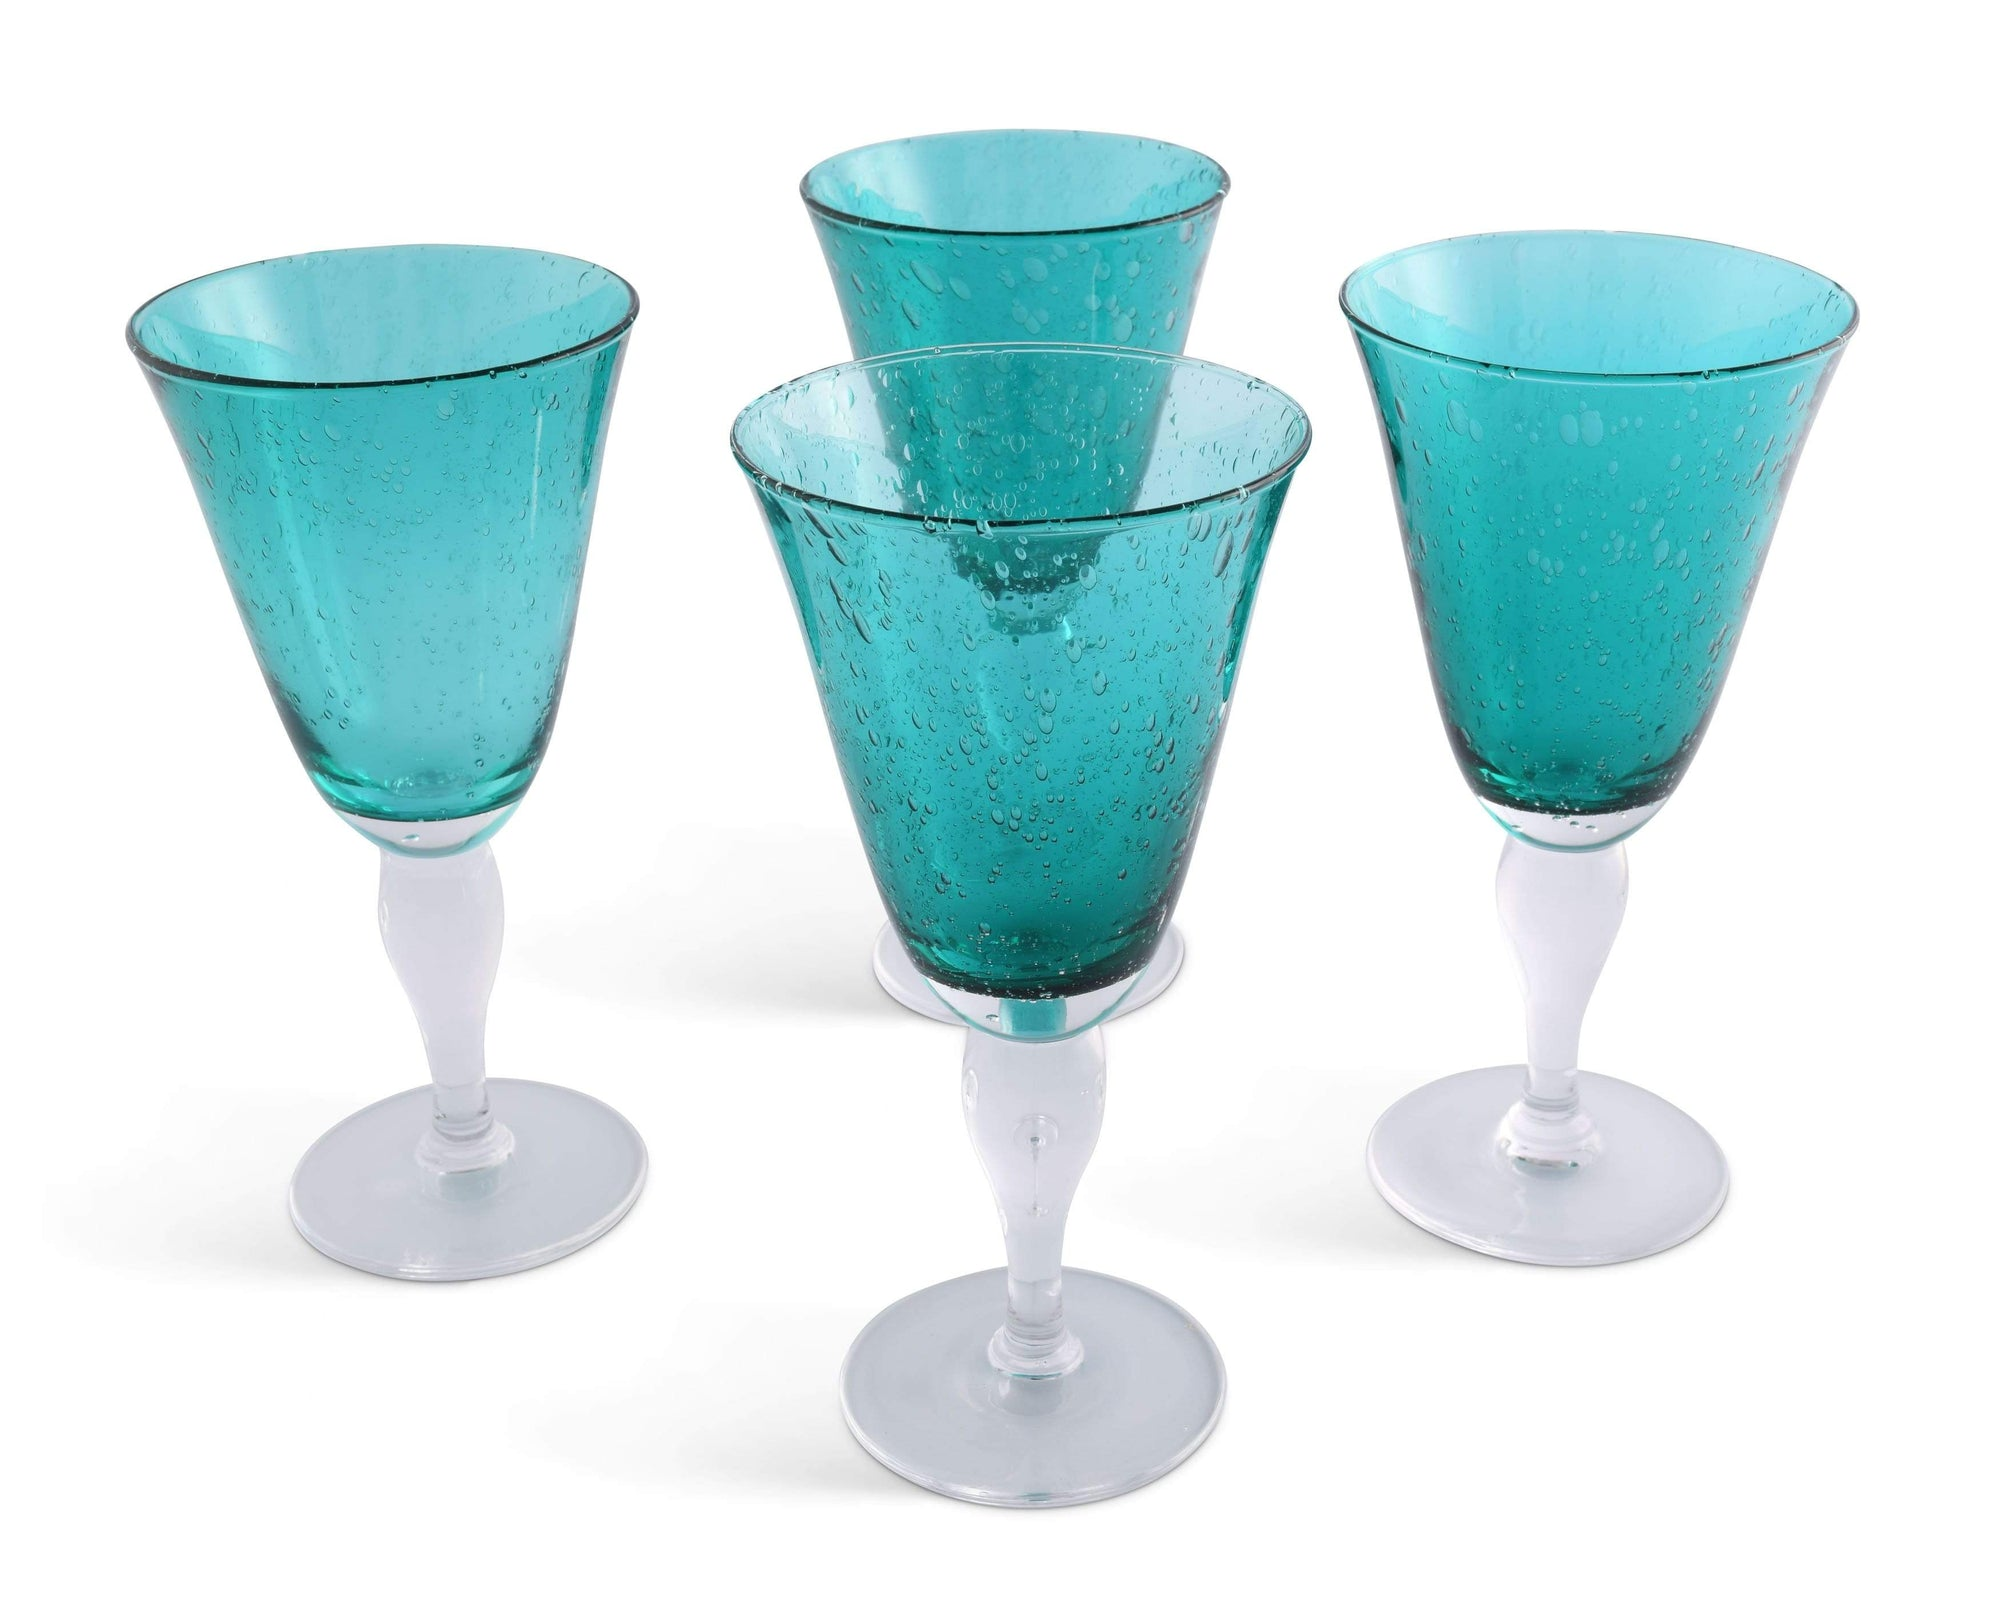 Vagabond House Hand Blown Glassware Illusion Water Glass - Green- Set of 4